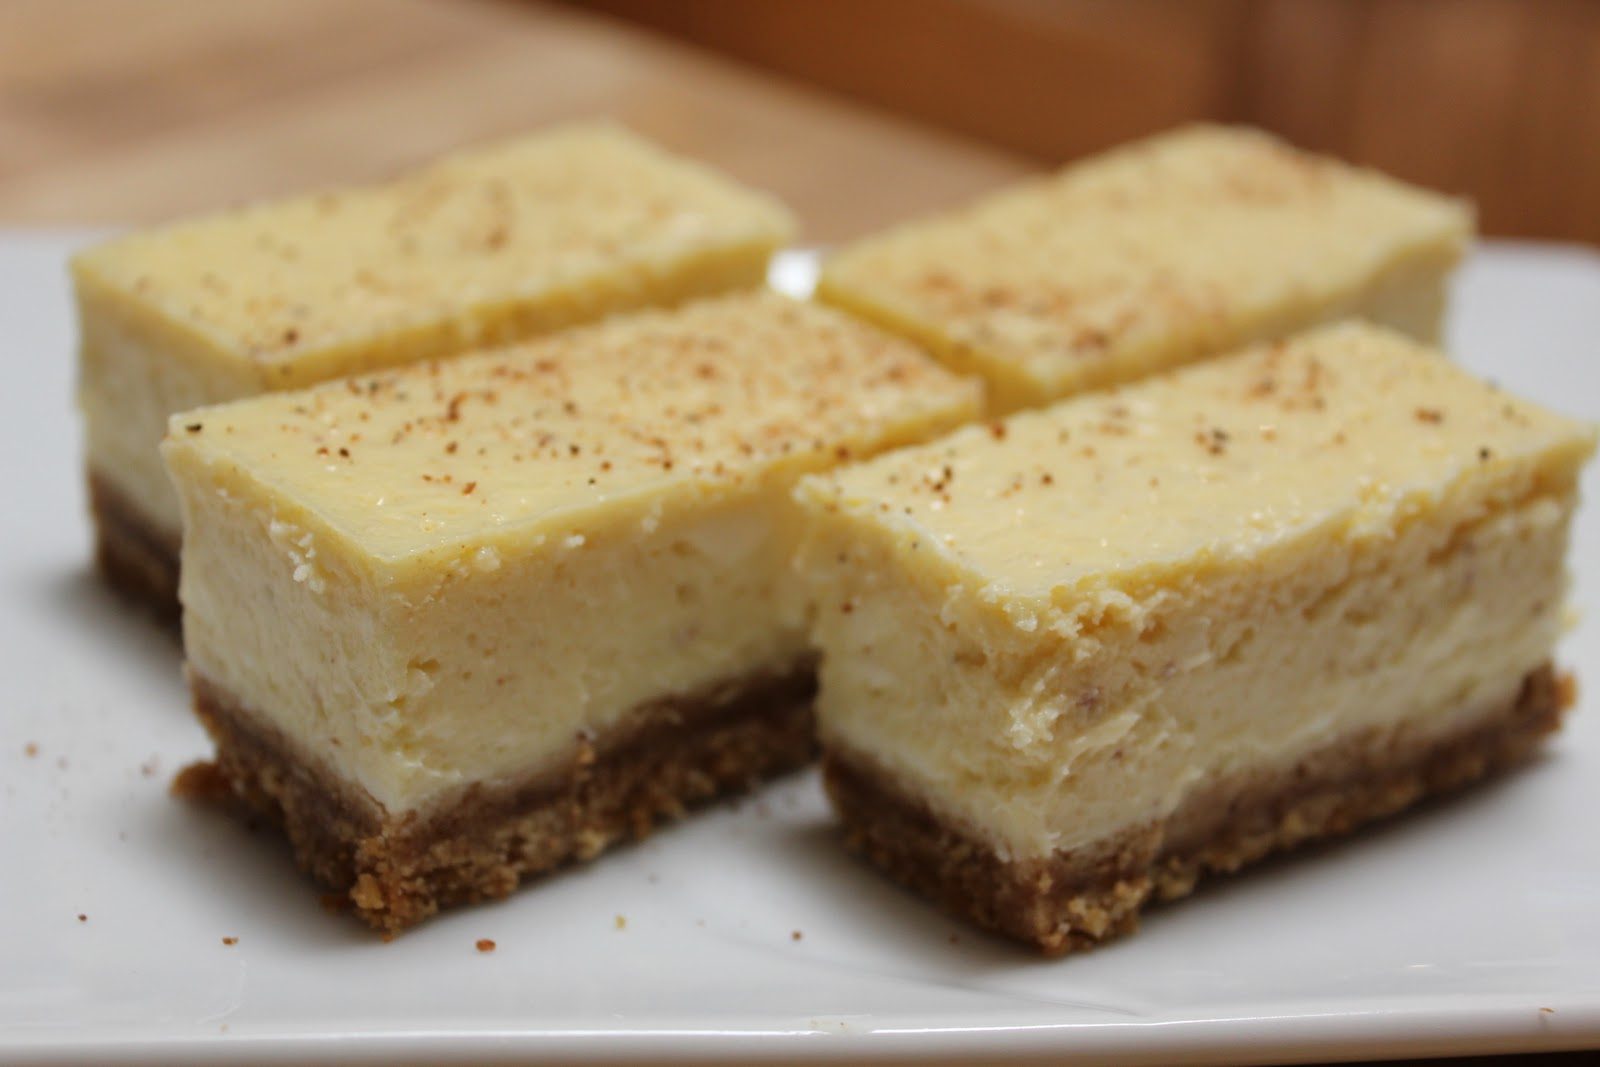 Easy Cheese Cake Uses Lemn Jello And Creme Cheese